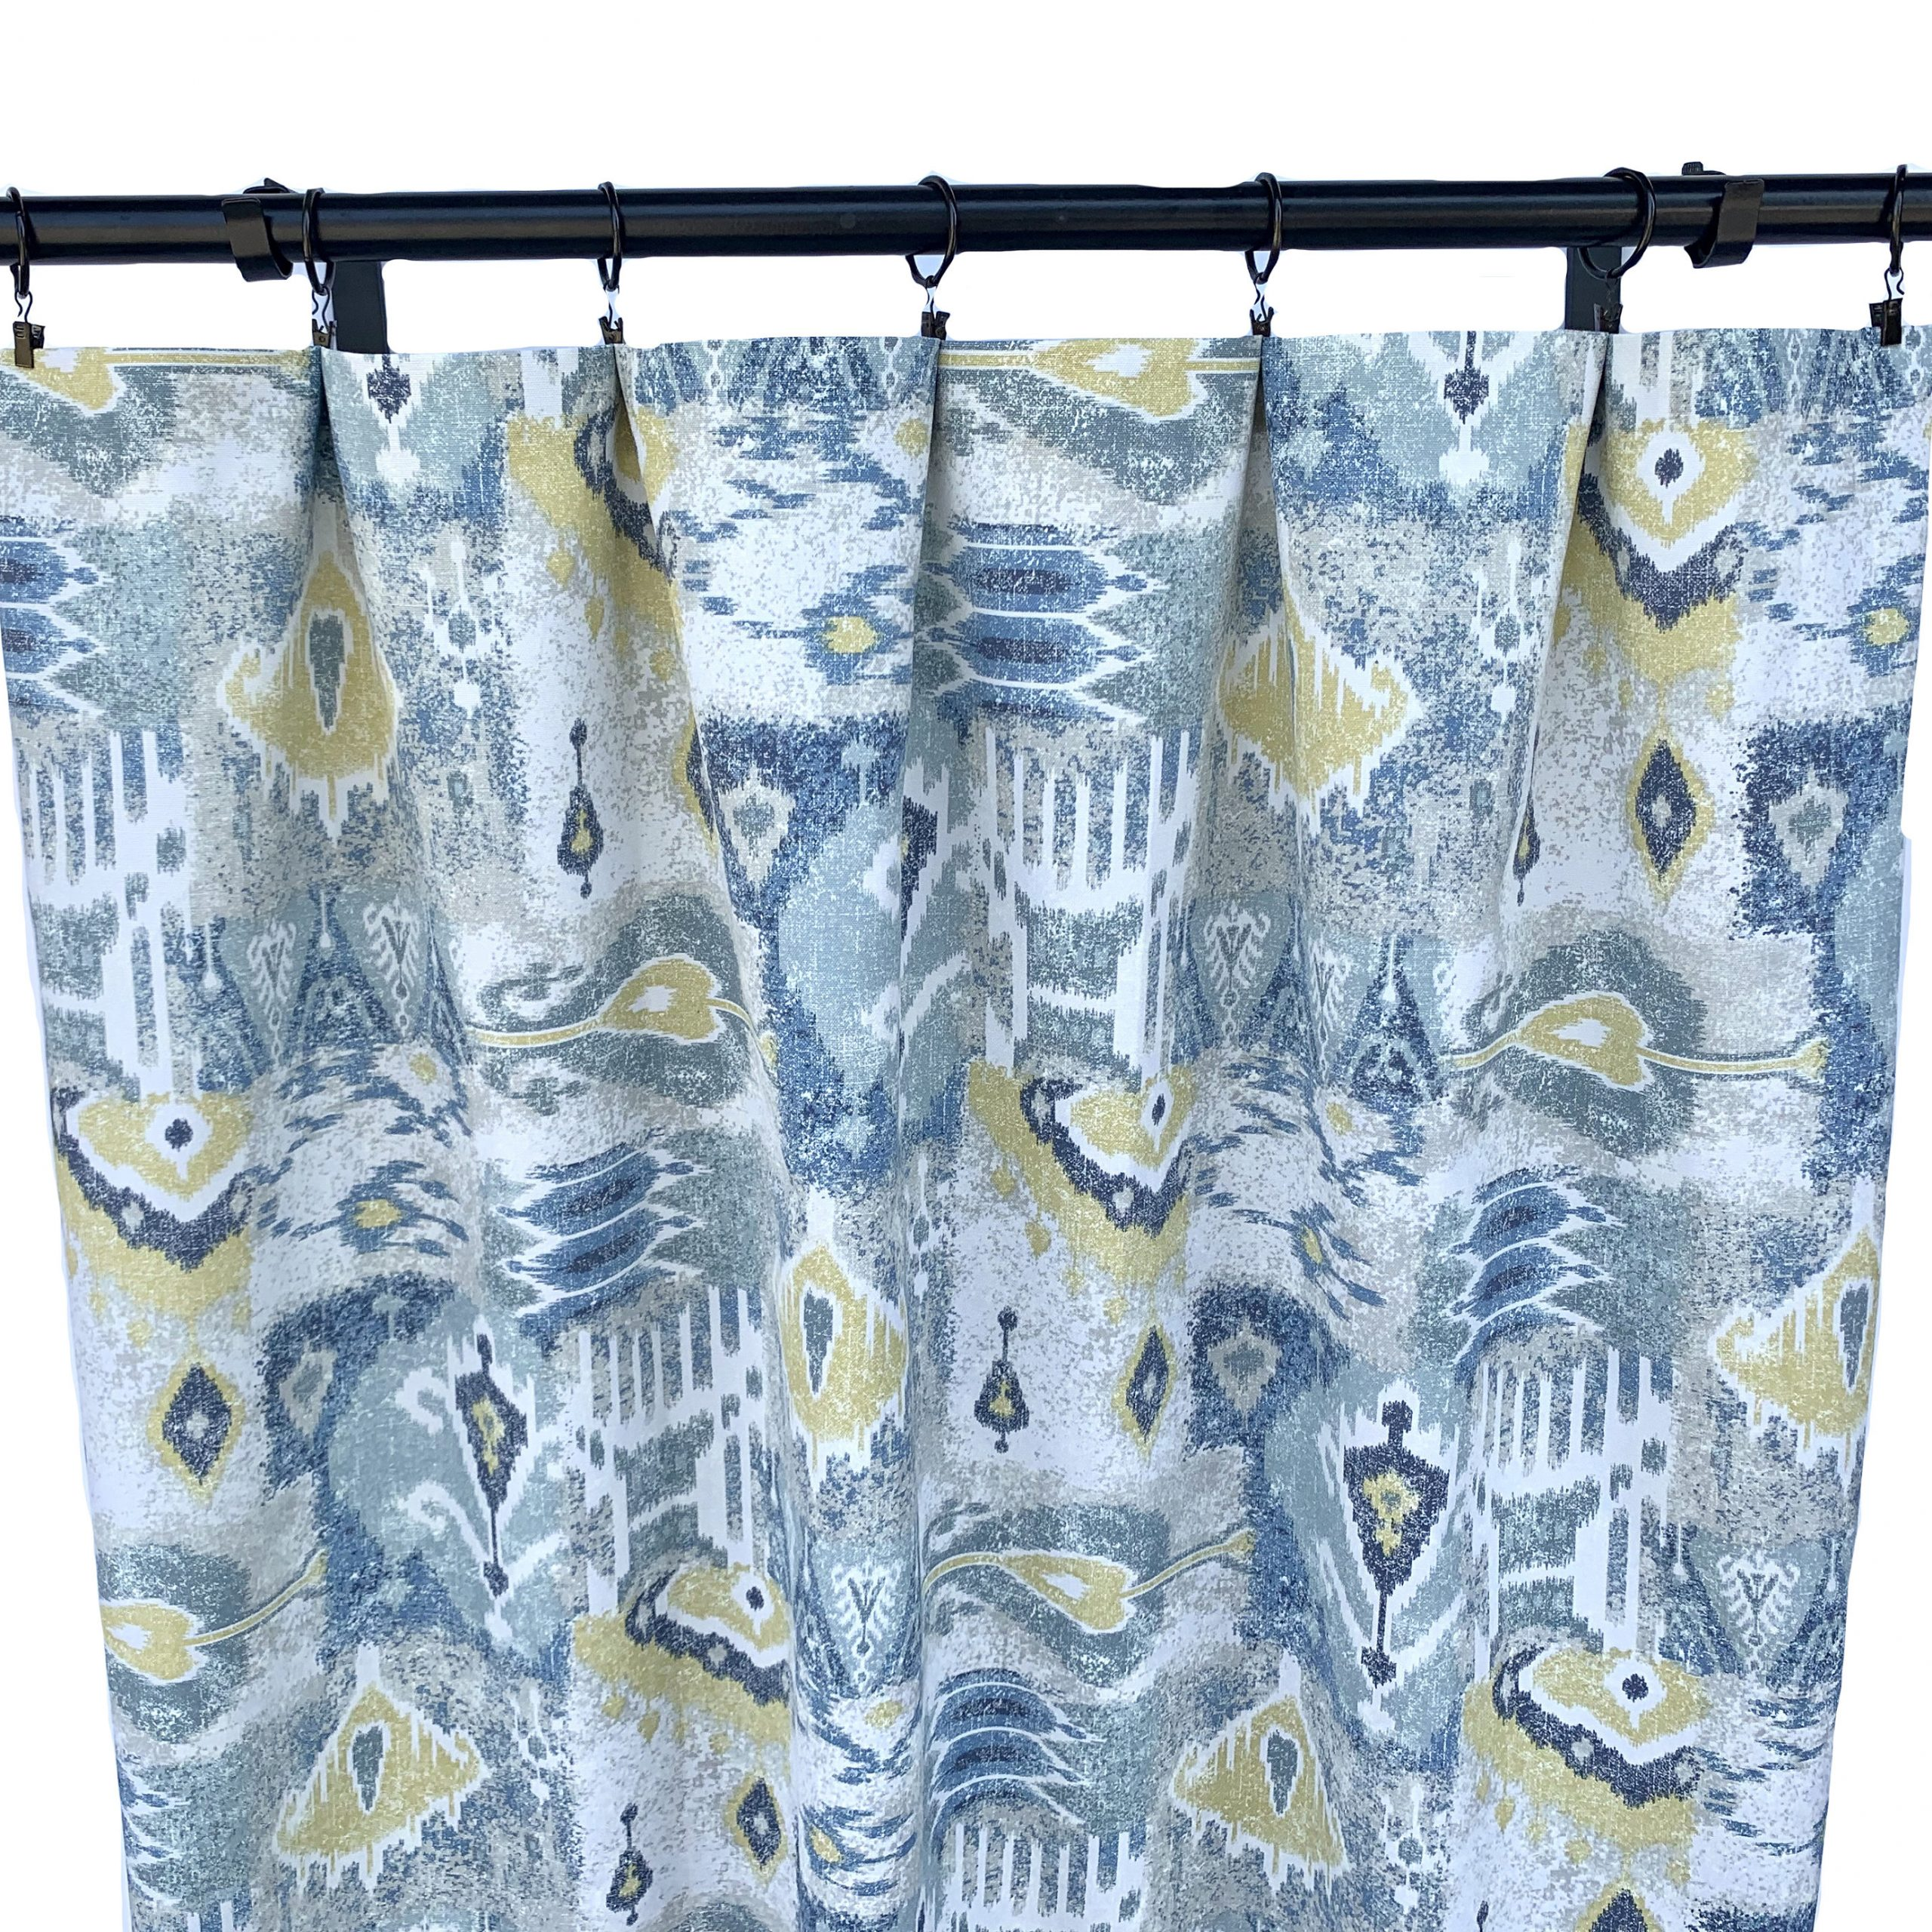 Ikat Blue Printed Cotton Curtain Panels Throughout Trendy Magnolia Curtains, Ikat Curtains, 2 Curtain Panels, Blue And Yellow Curtains, Home Decor, Geometric Curtain, 90's Curtains, Mid Century (View 17 of 20)